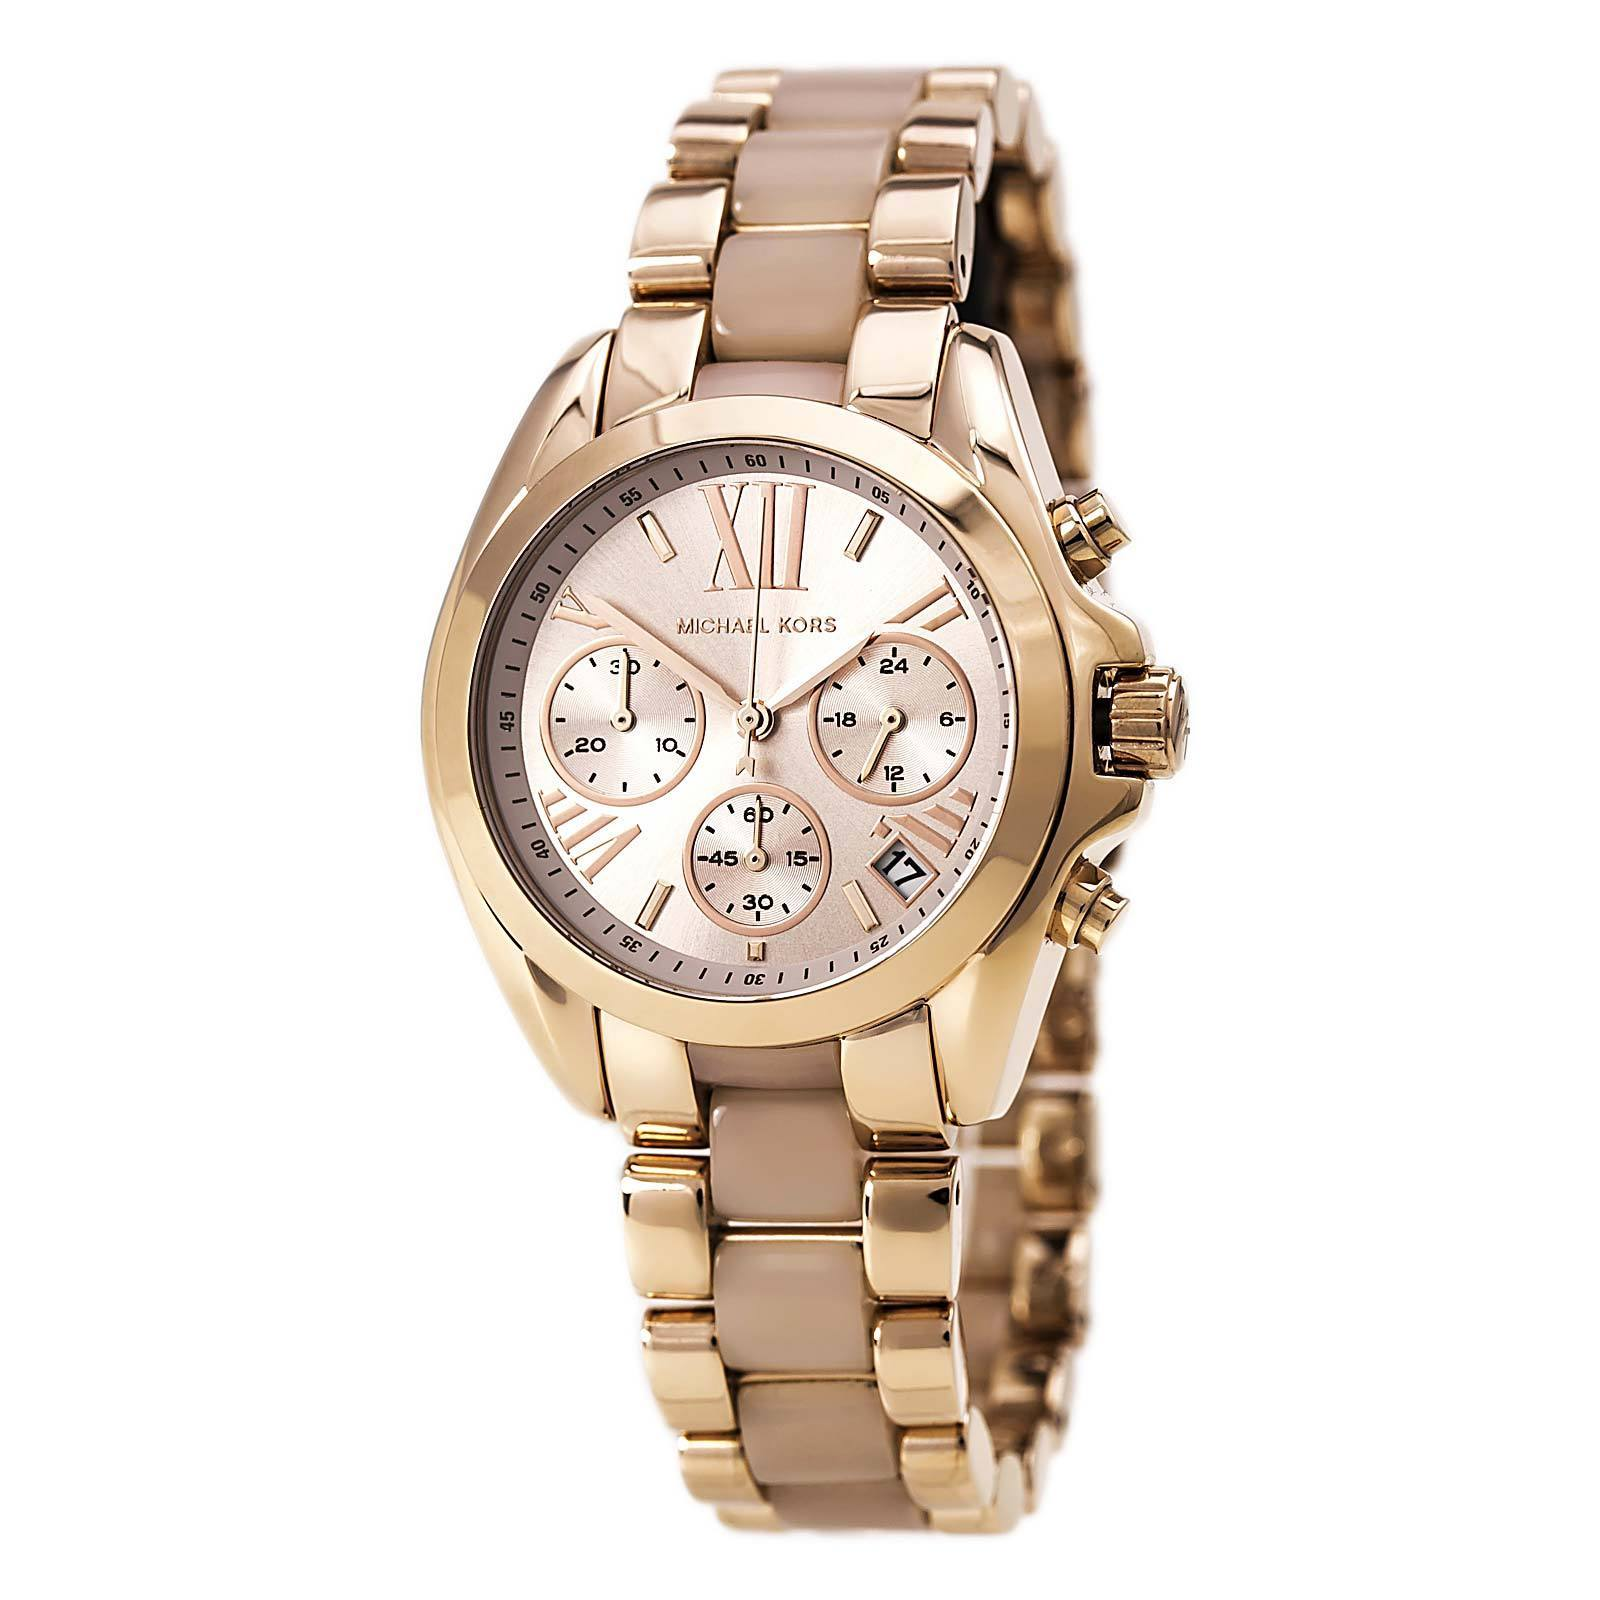 25cfebe859f Michael Kors Women s MK6066  Bradshaw  Rose Gold Tone Ion Plated Stainless  Steel Watch